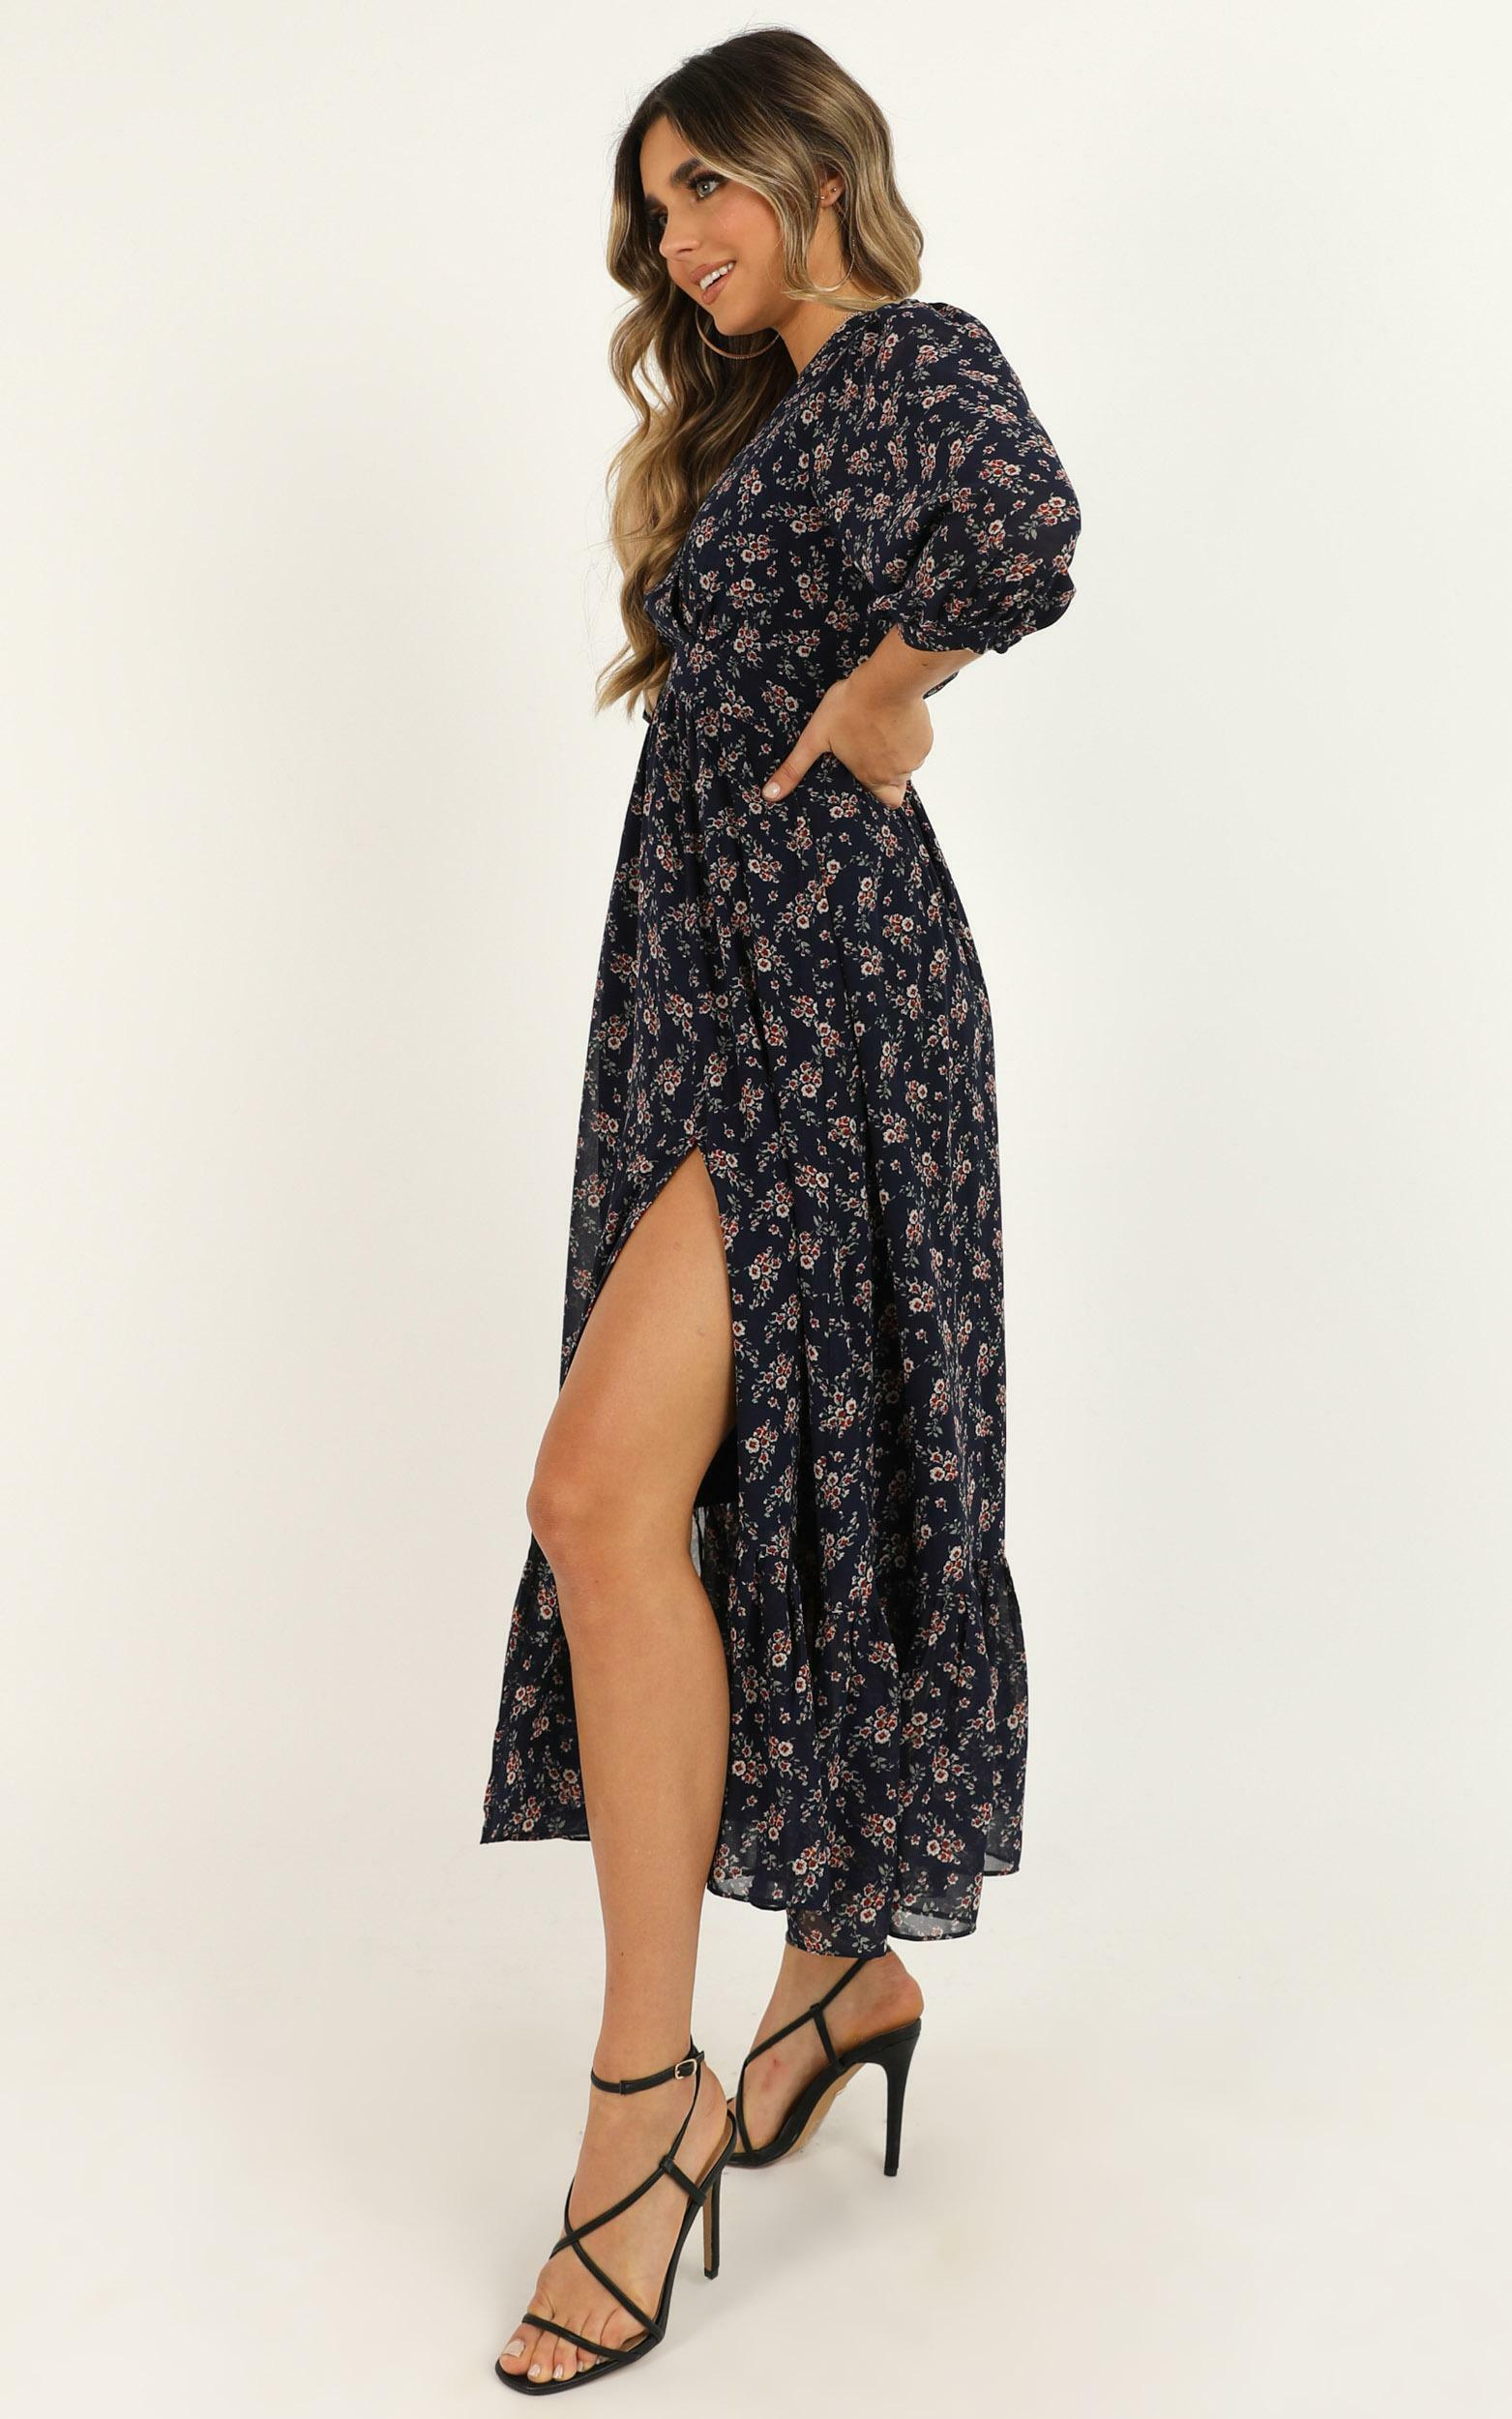 Copied Over Dress in navy floral - 20 (XXXXL), Navy, hi-res image number null